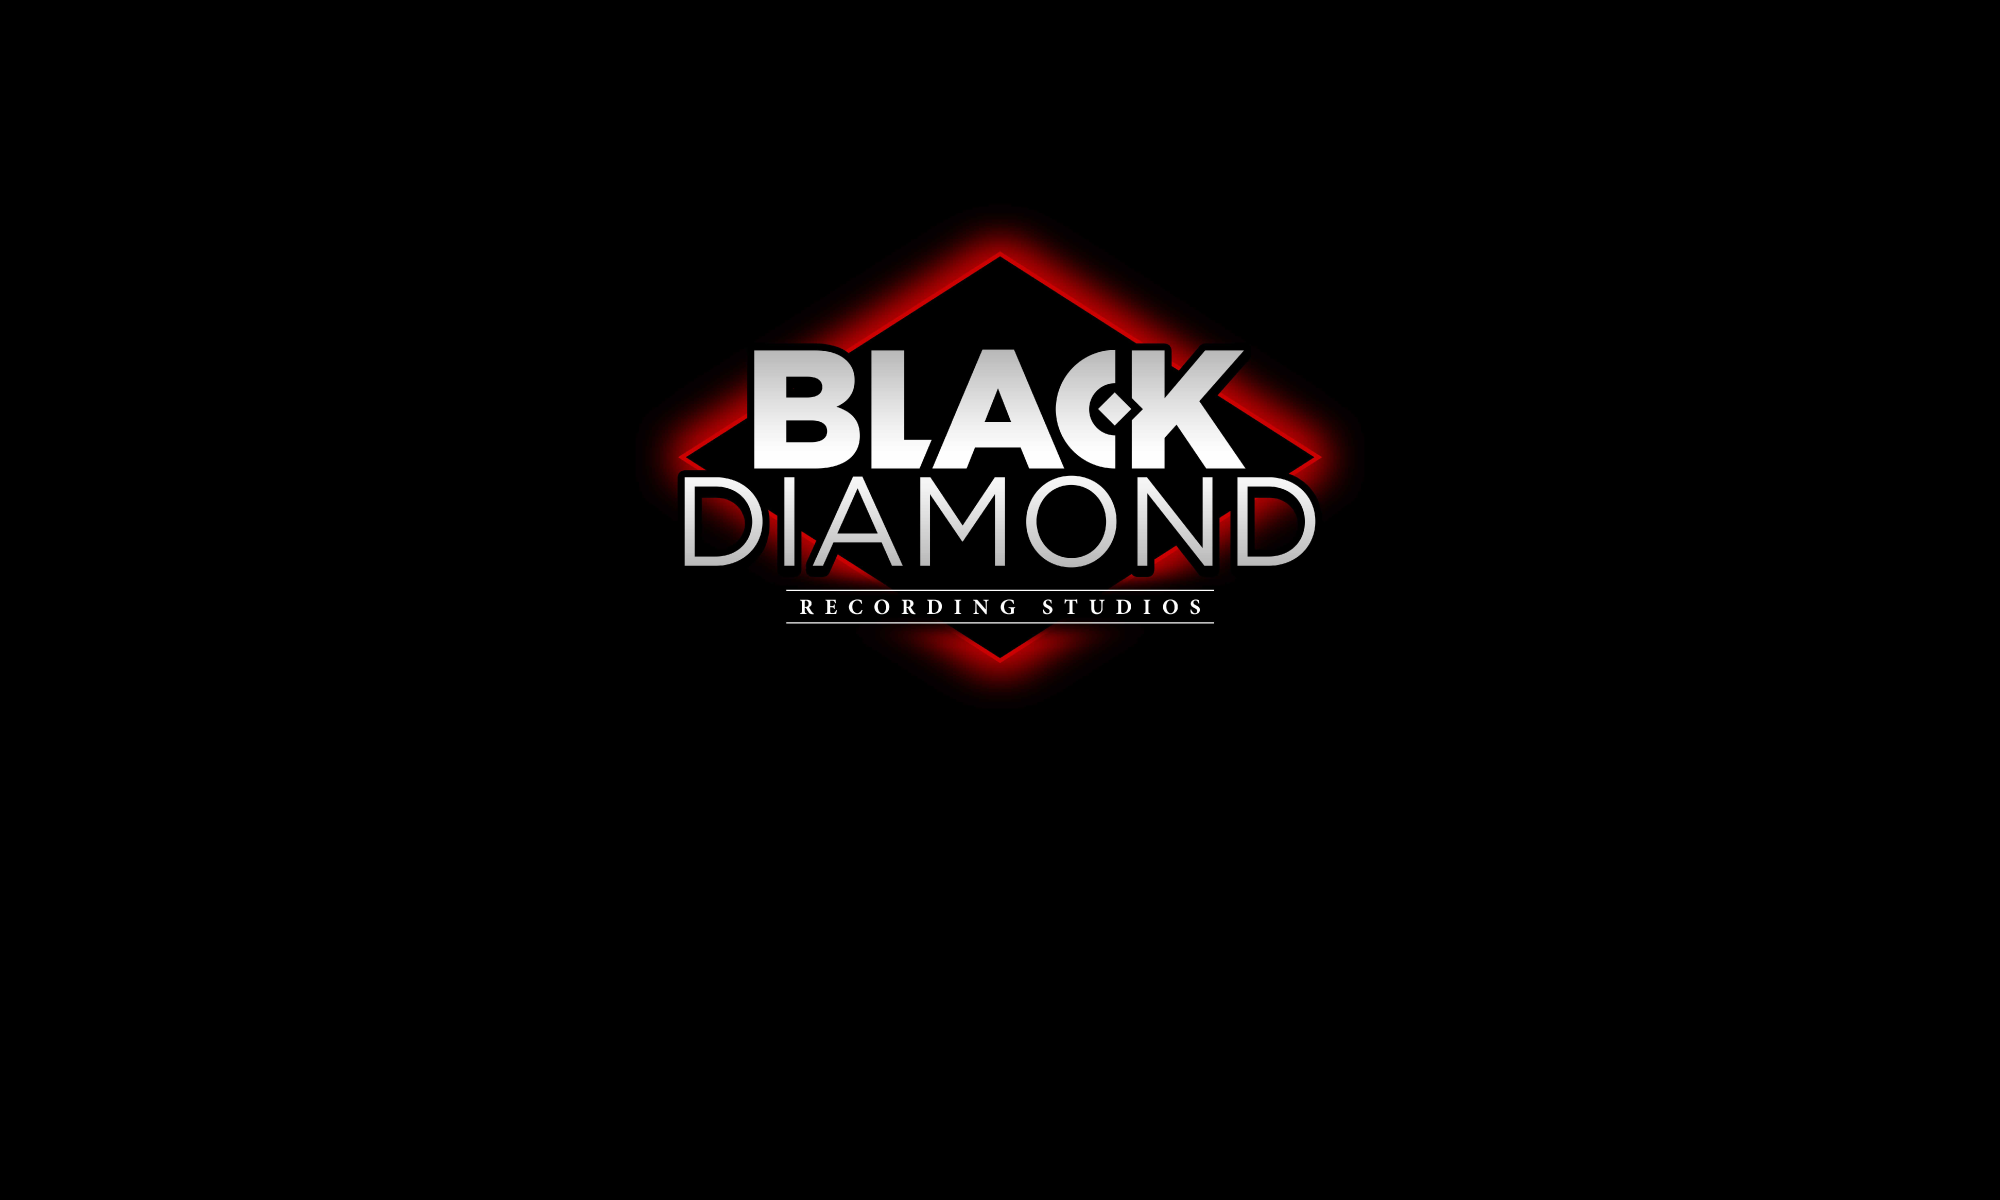 - Black Diamond Studios is a local recording studio that prides itself on utilizing cutting-edge technology to help people get the sound they desire. Portland, Oregon.